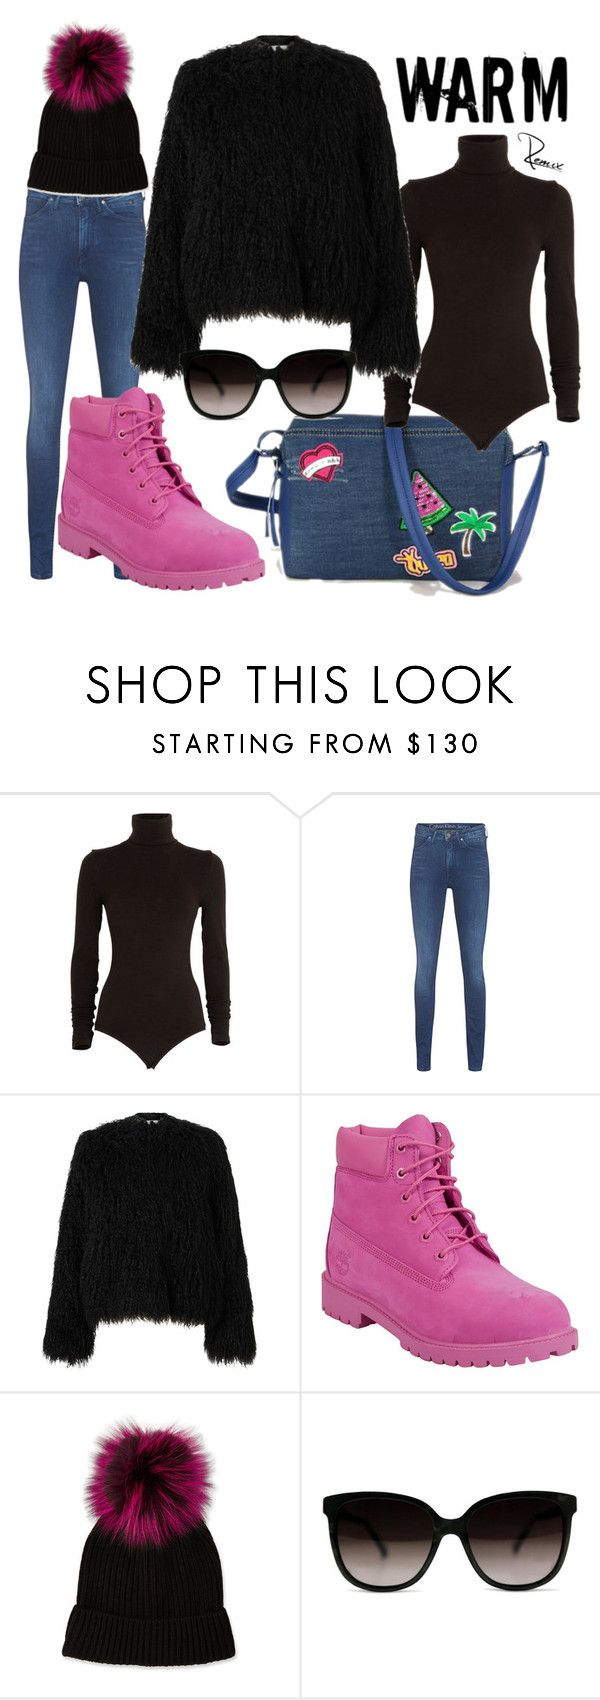 """Winter fun"" by aleva on Polyvore featuring Wolford, Calvin Klein Jeans, Samsøe & Samsøe, Timberland and Neiman Marcus"